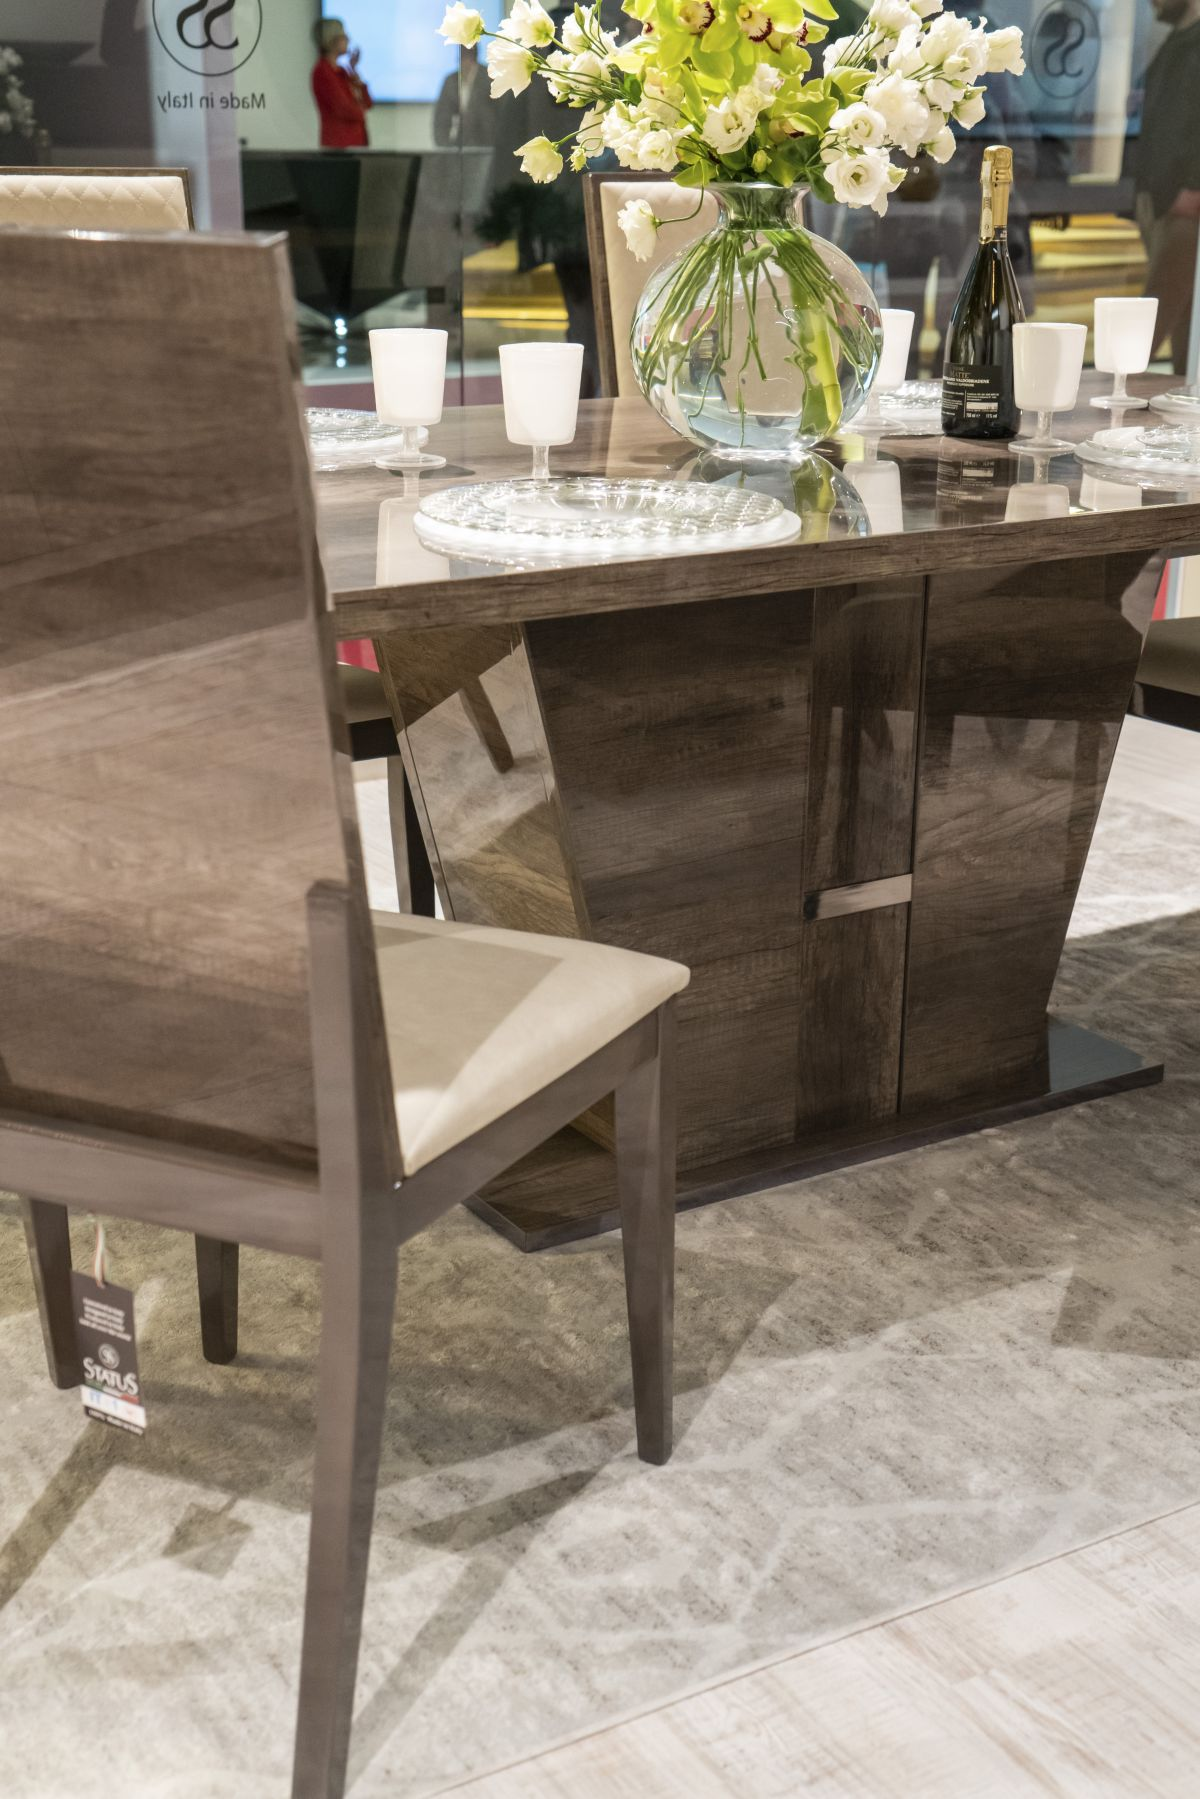 Solida base dining table - How To Design And Decorate The Space Around Your Dining Table